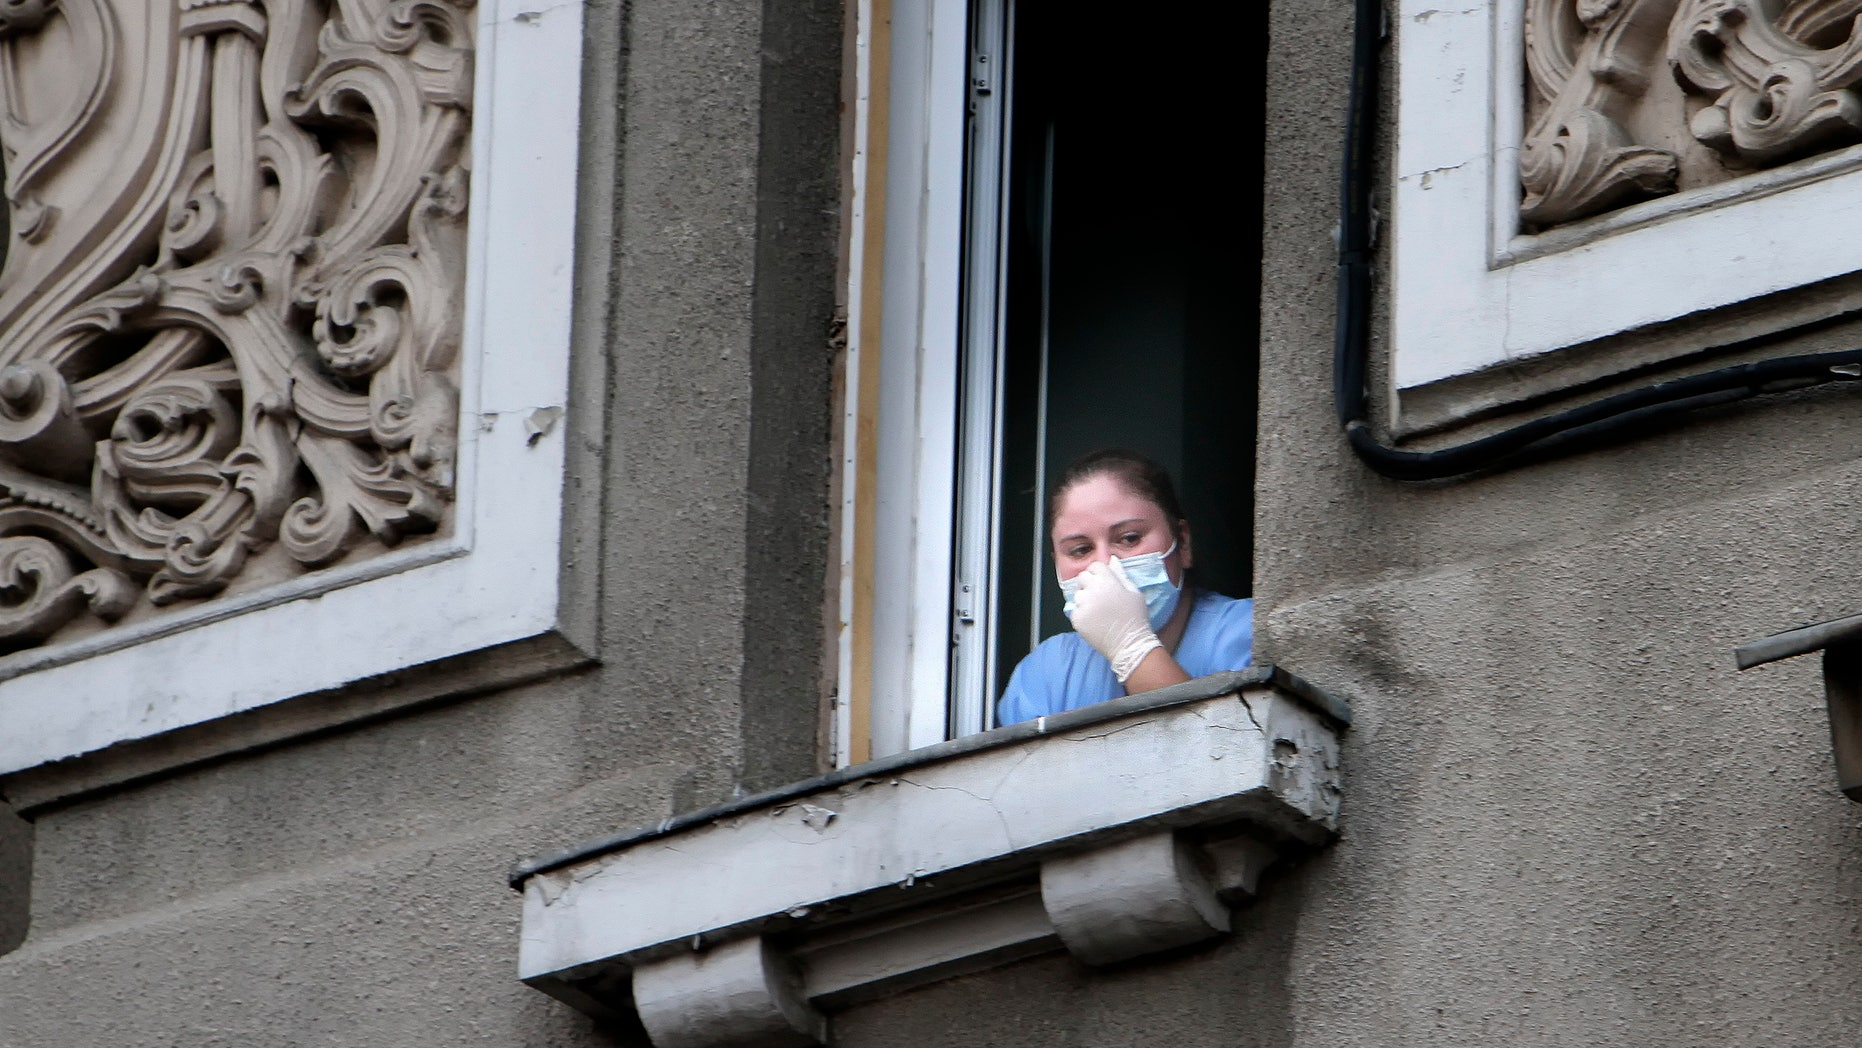 In this Aug. 16, 2010 file photo a nurse looks on from a window of the Giulesti hospital following a fire that left 5 newborn babies dead.